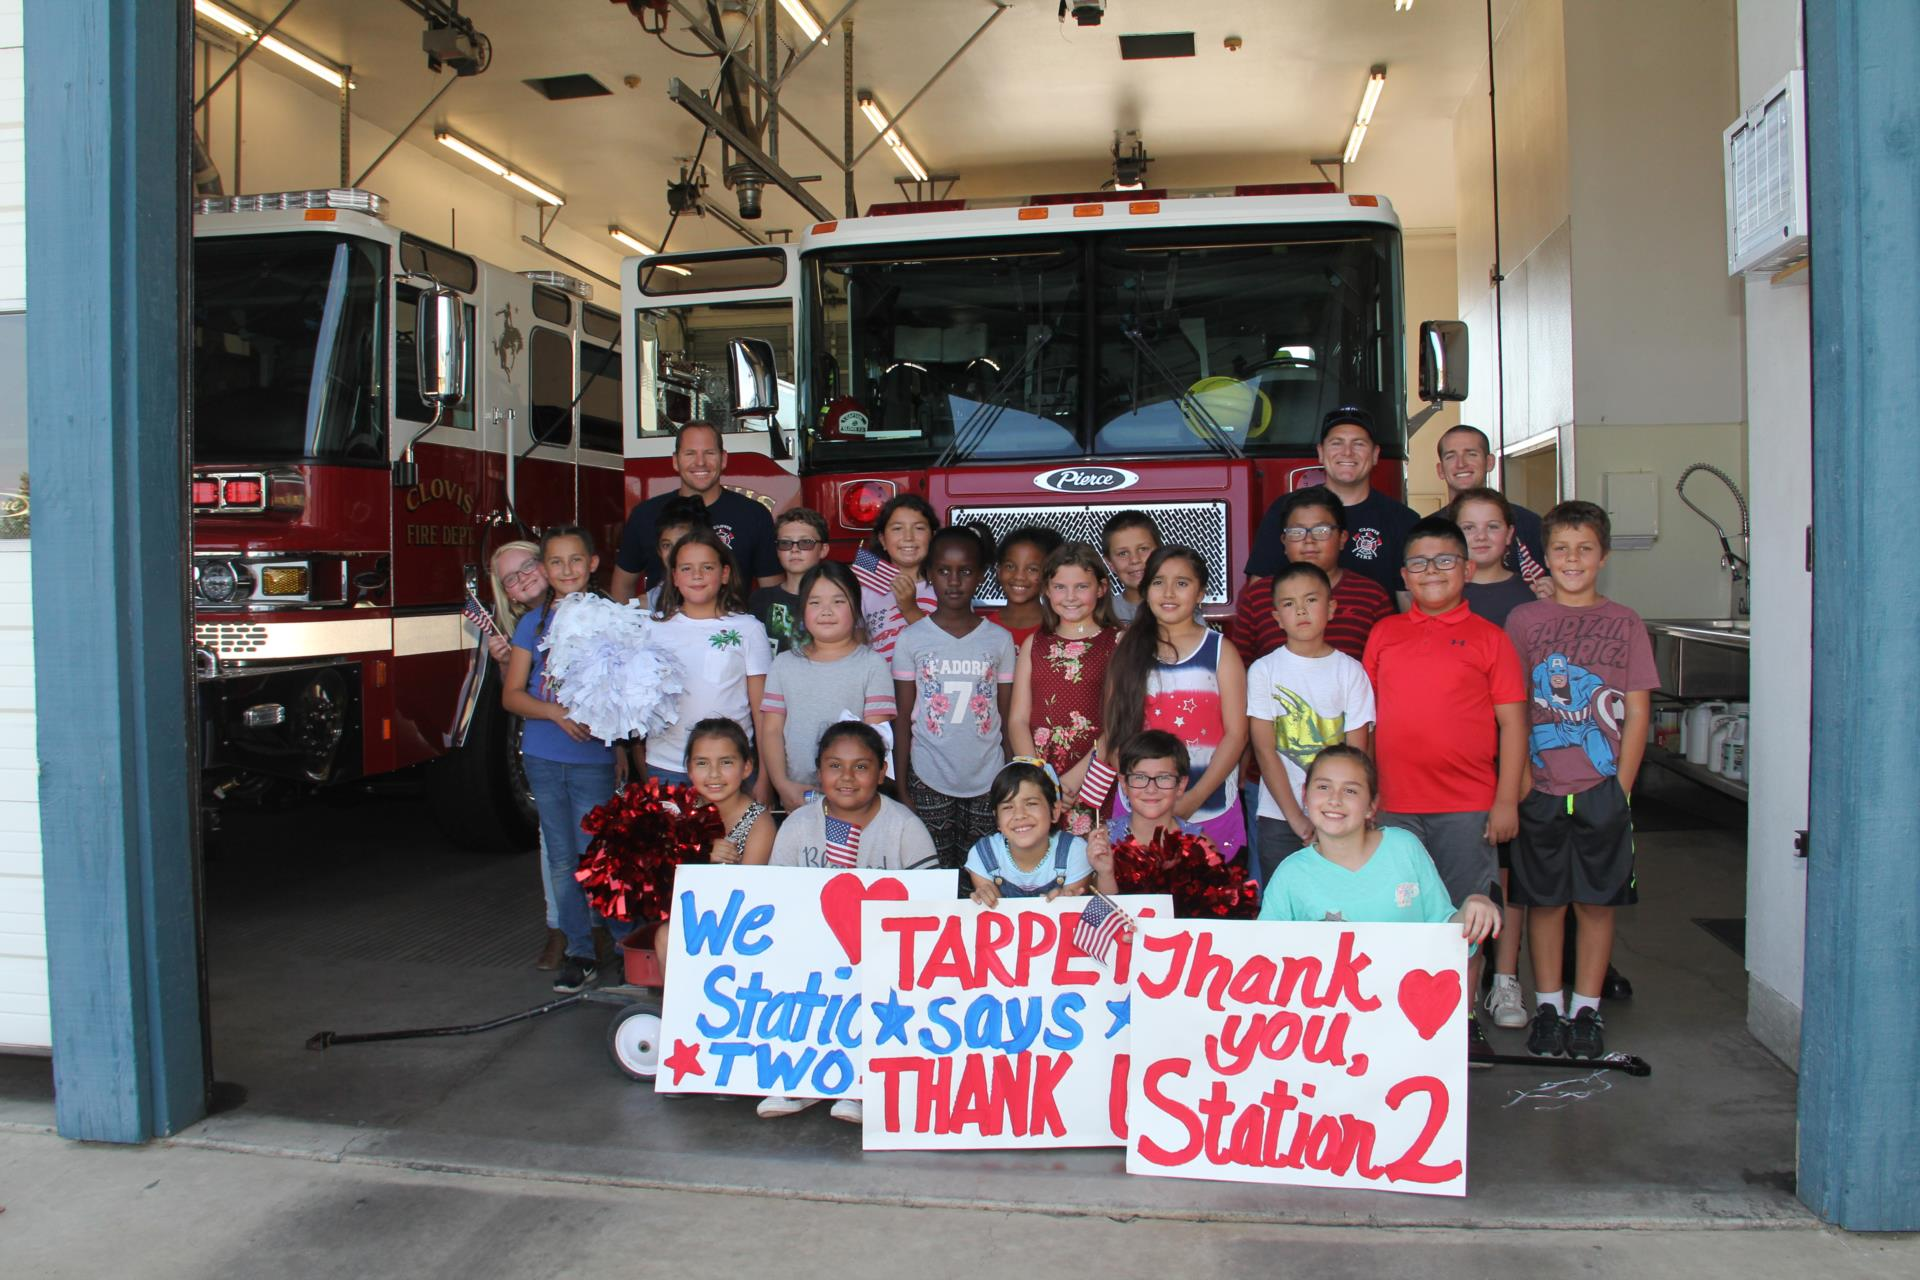 student council and fire station #2